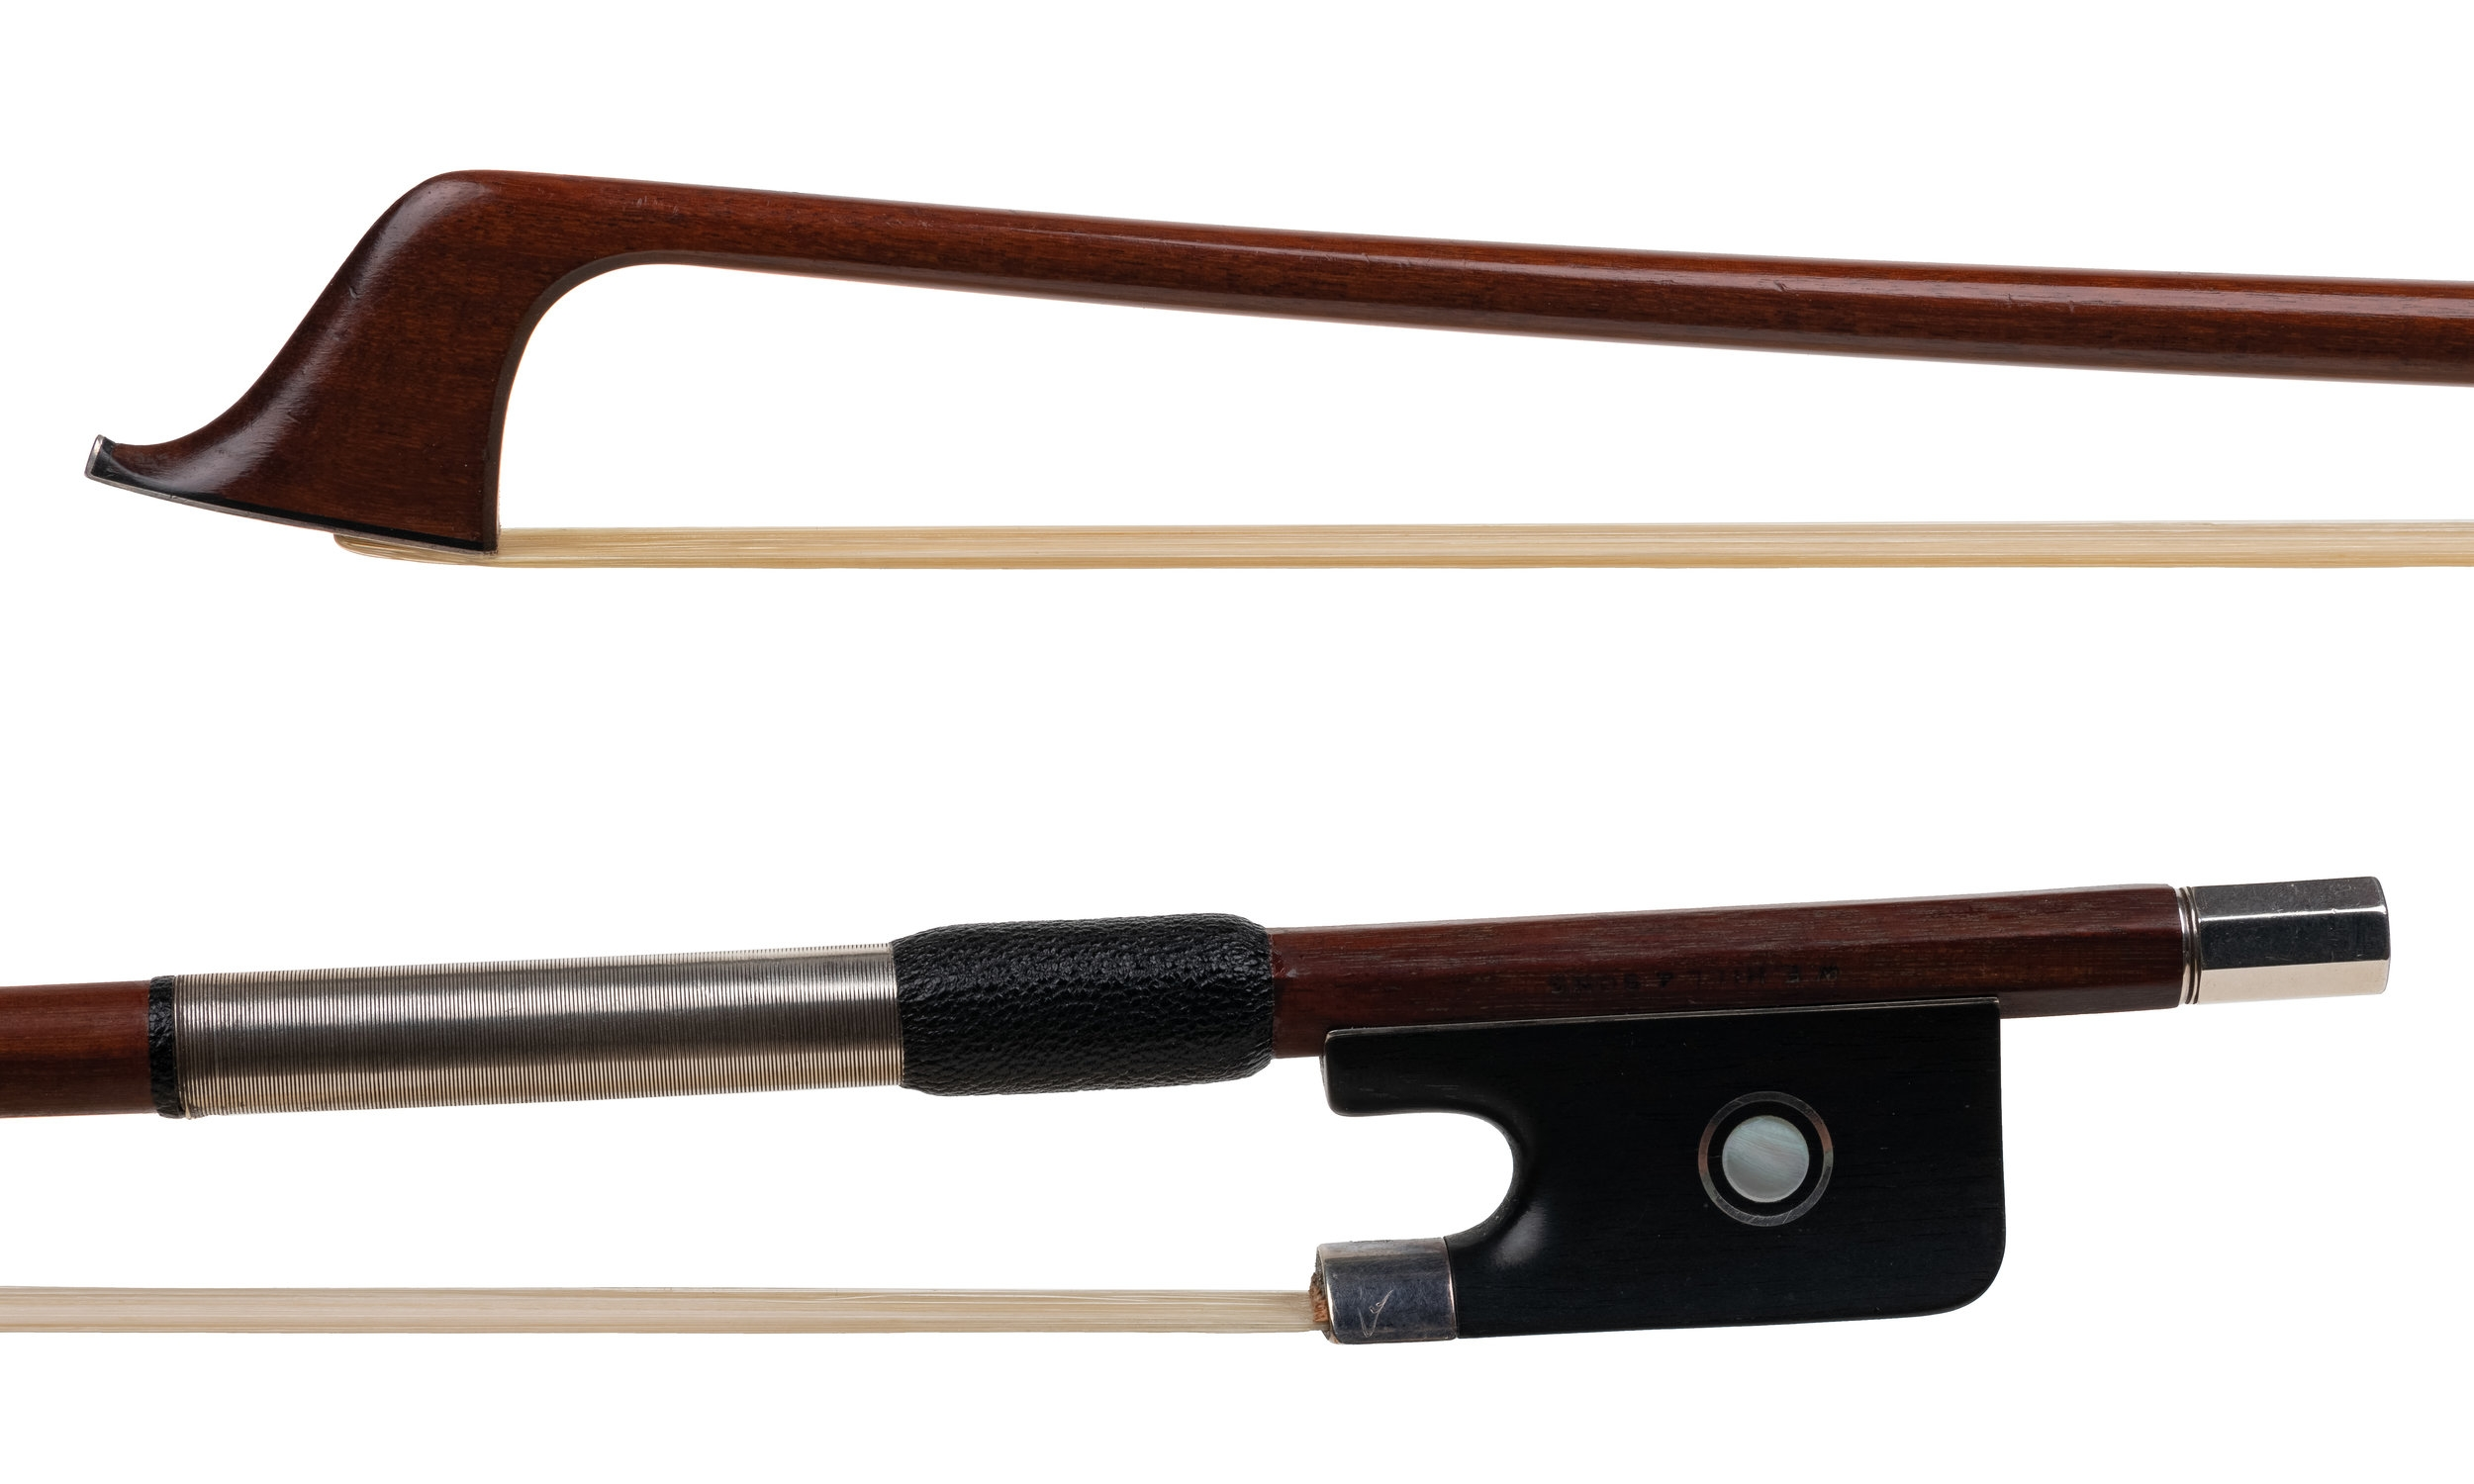 Hill & Sons 935 ce bow.jpg